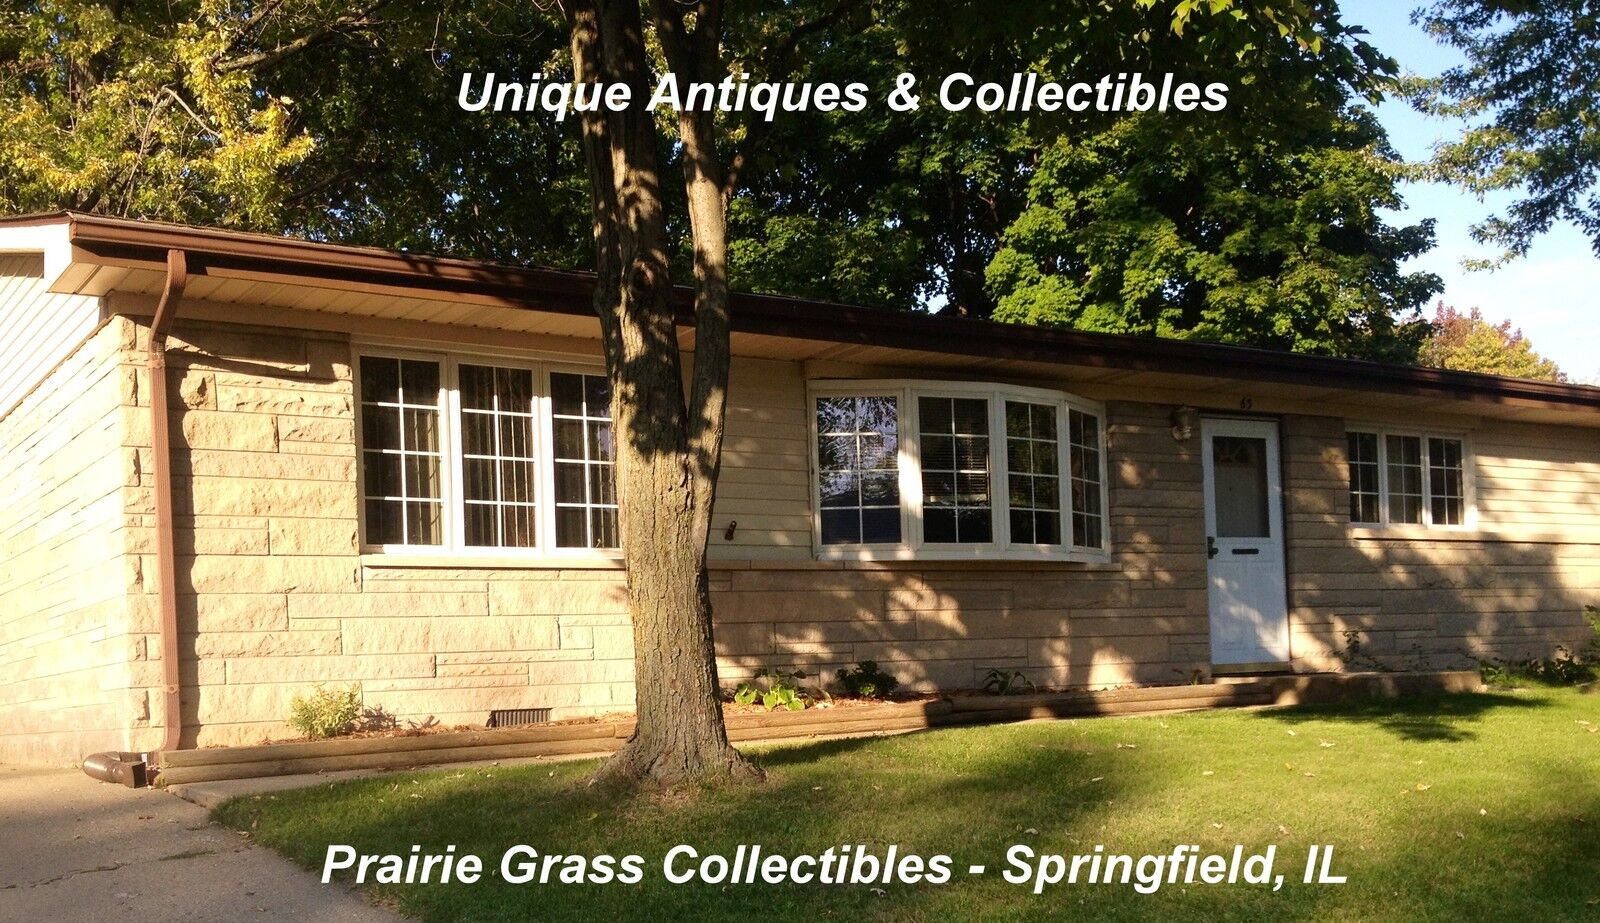 Prairie Grass Collectibles